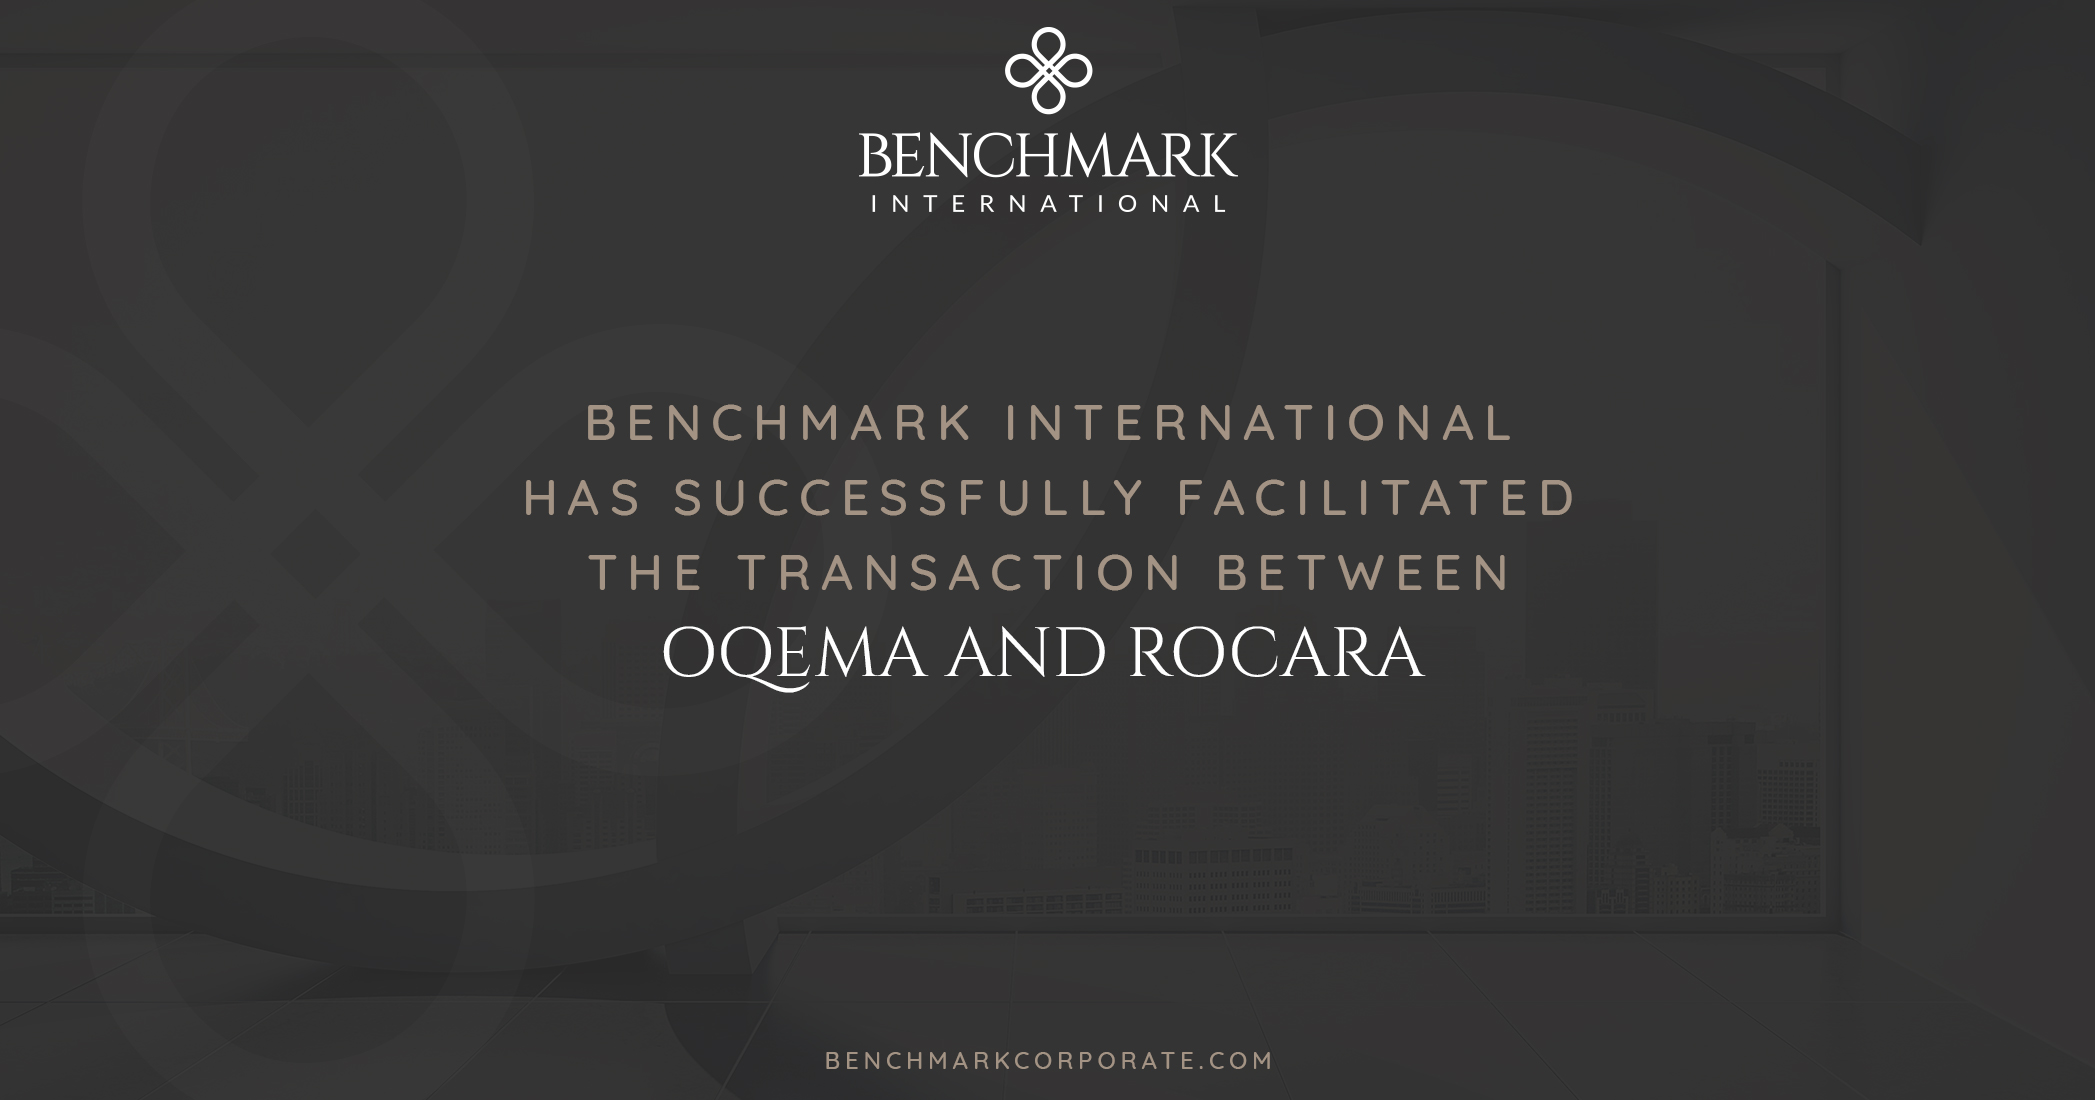 Benchmark International Has Successfully Facilitated the transaction between OQEMA and Rocara